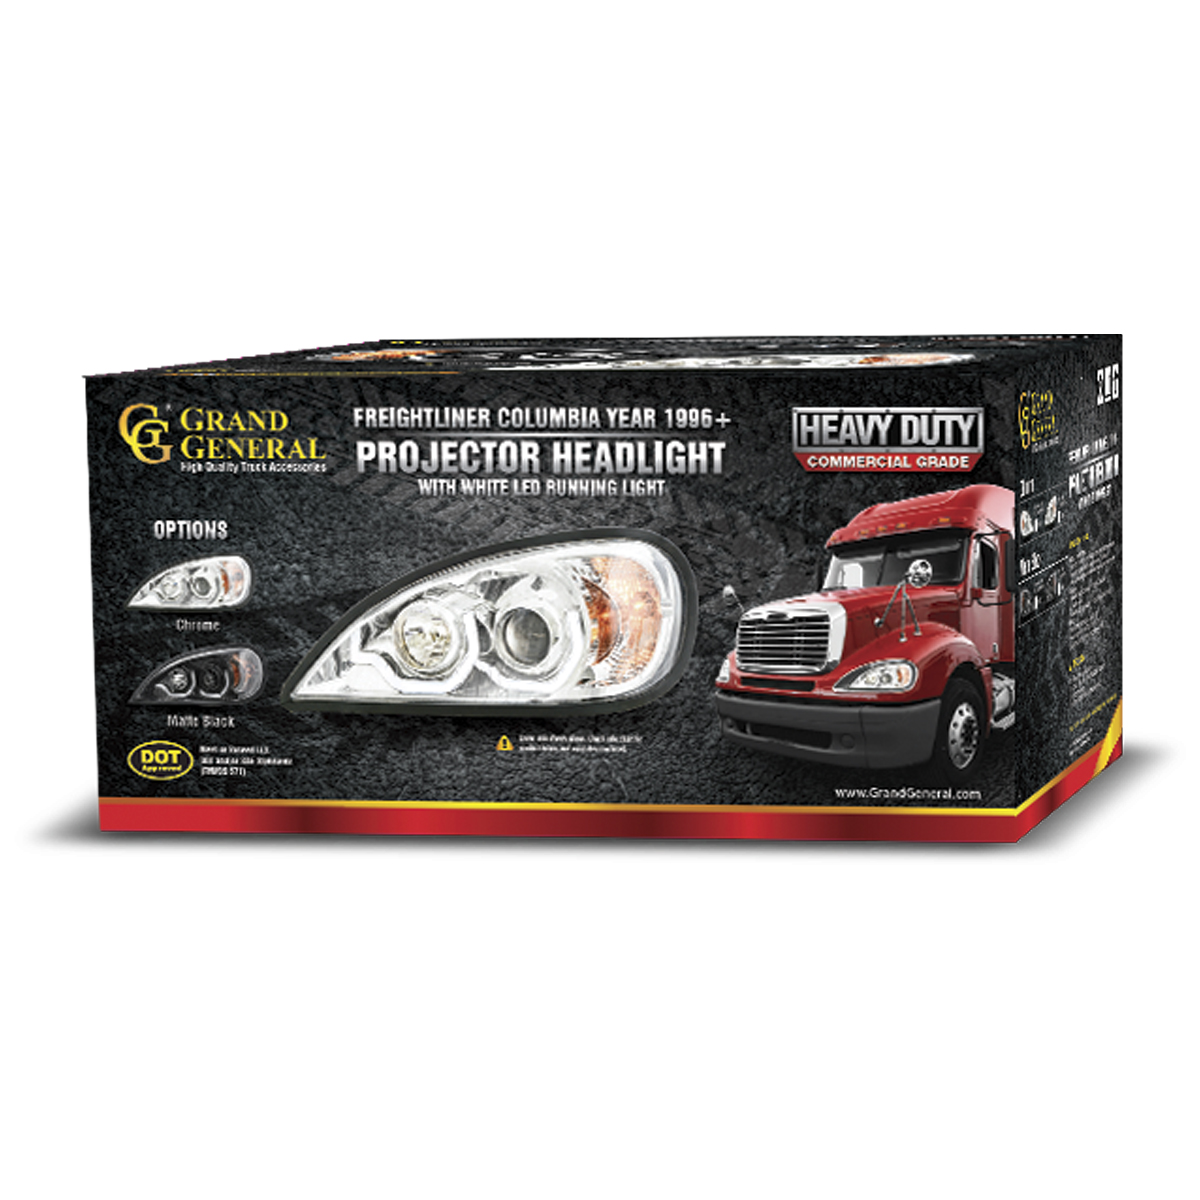 Freightliner Columbia Matte Black Projector Headlight w/ White LED Running Light